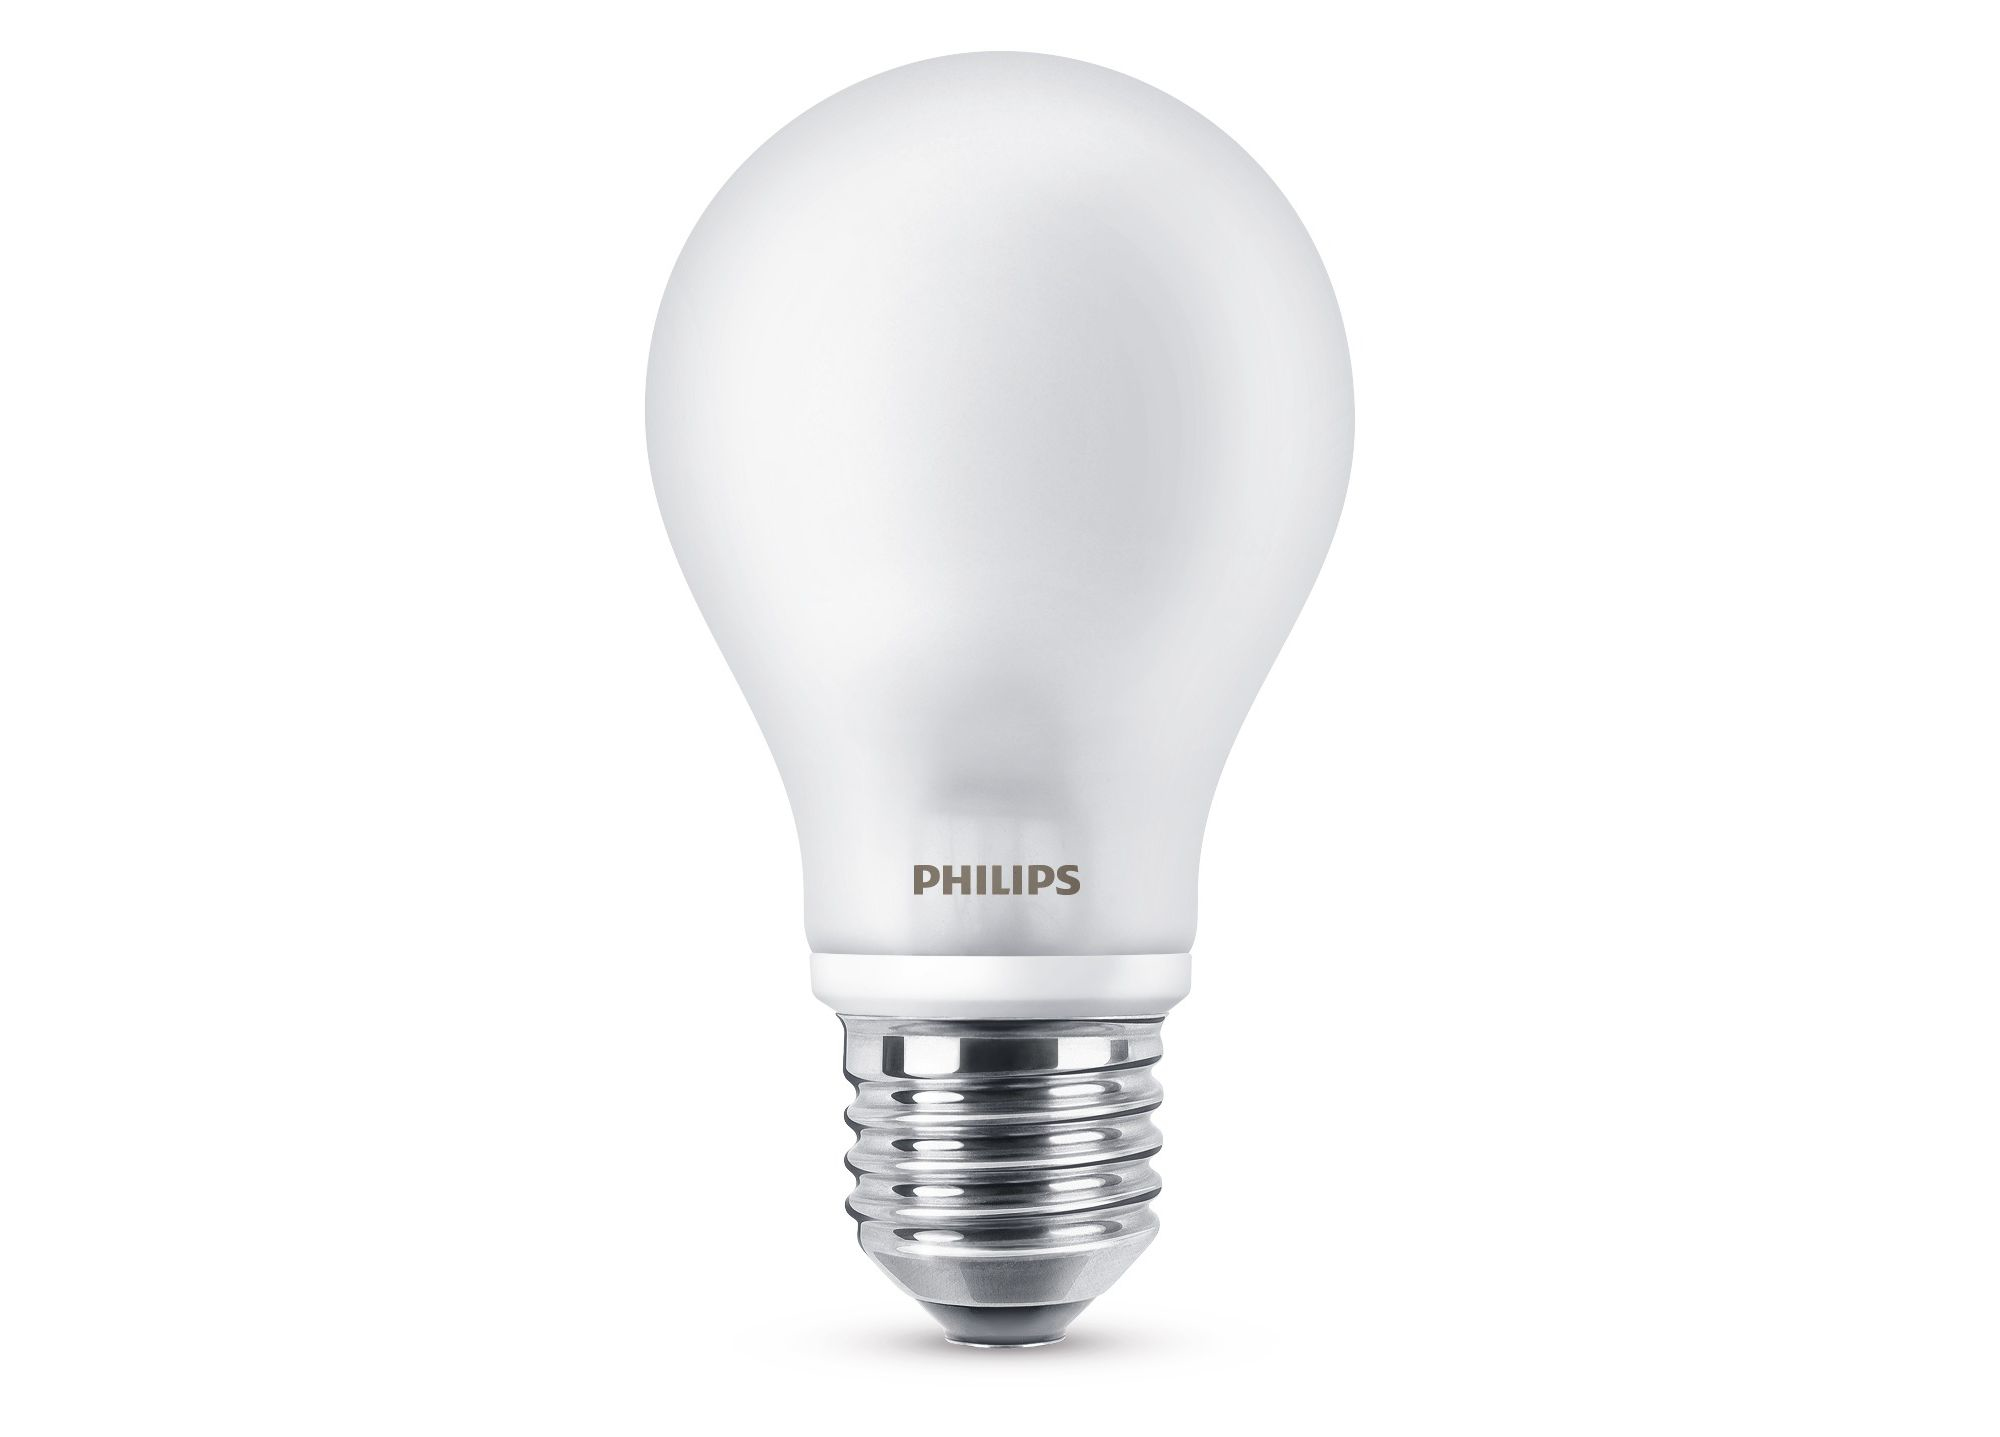 Philips - Lampadina a LED - Incaled75865